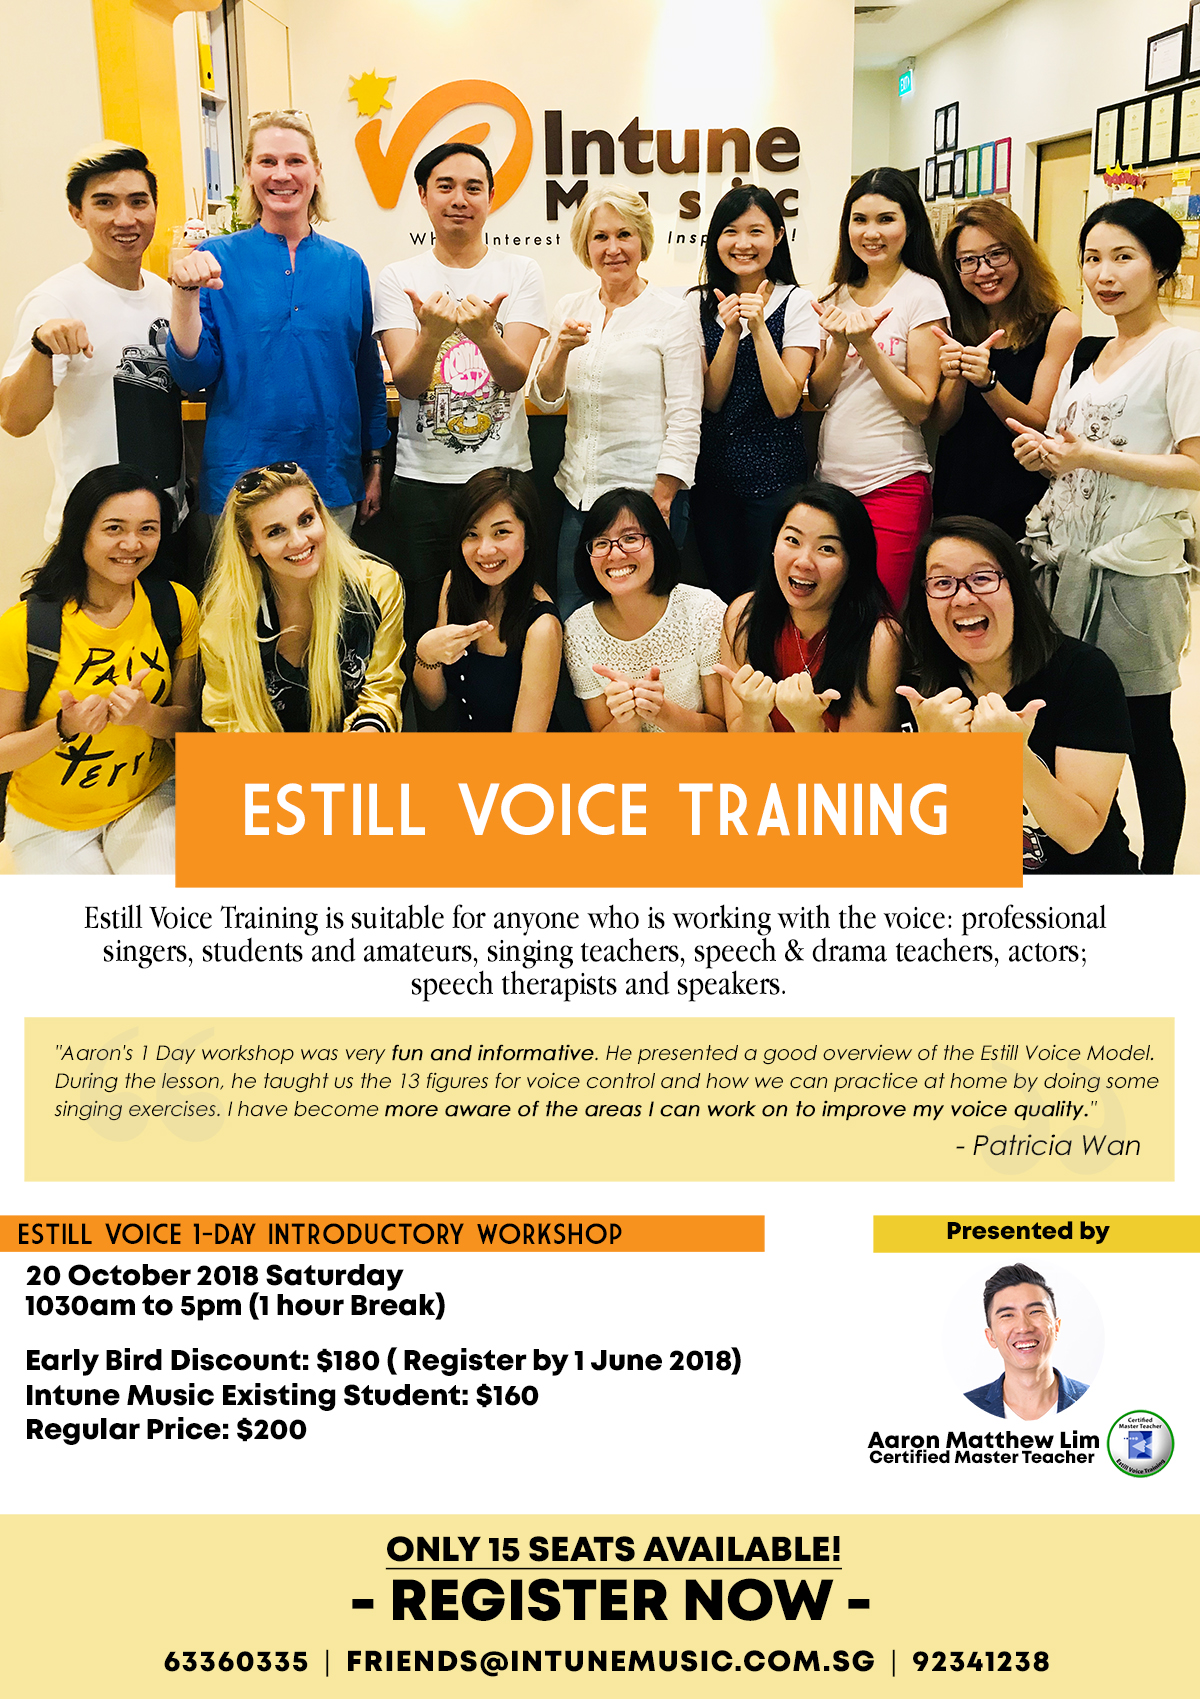 Estill Voice Training Introductory Workshop: A practical strategy